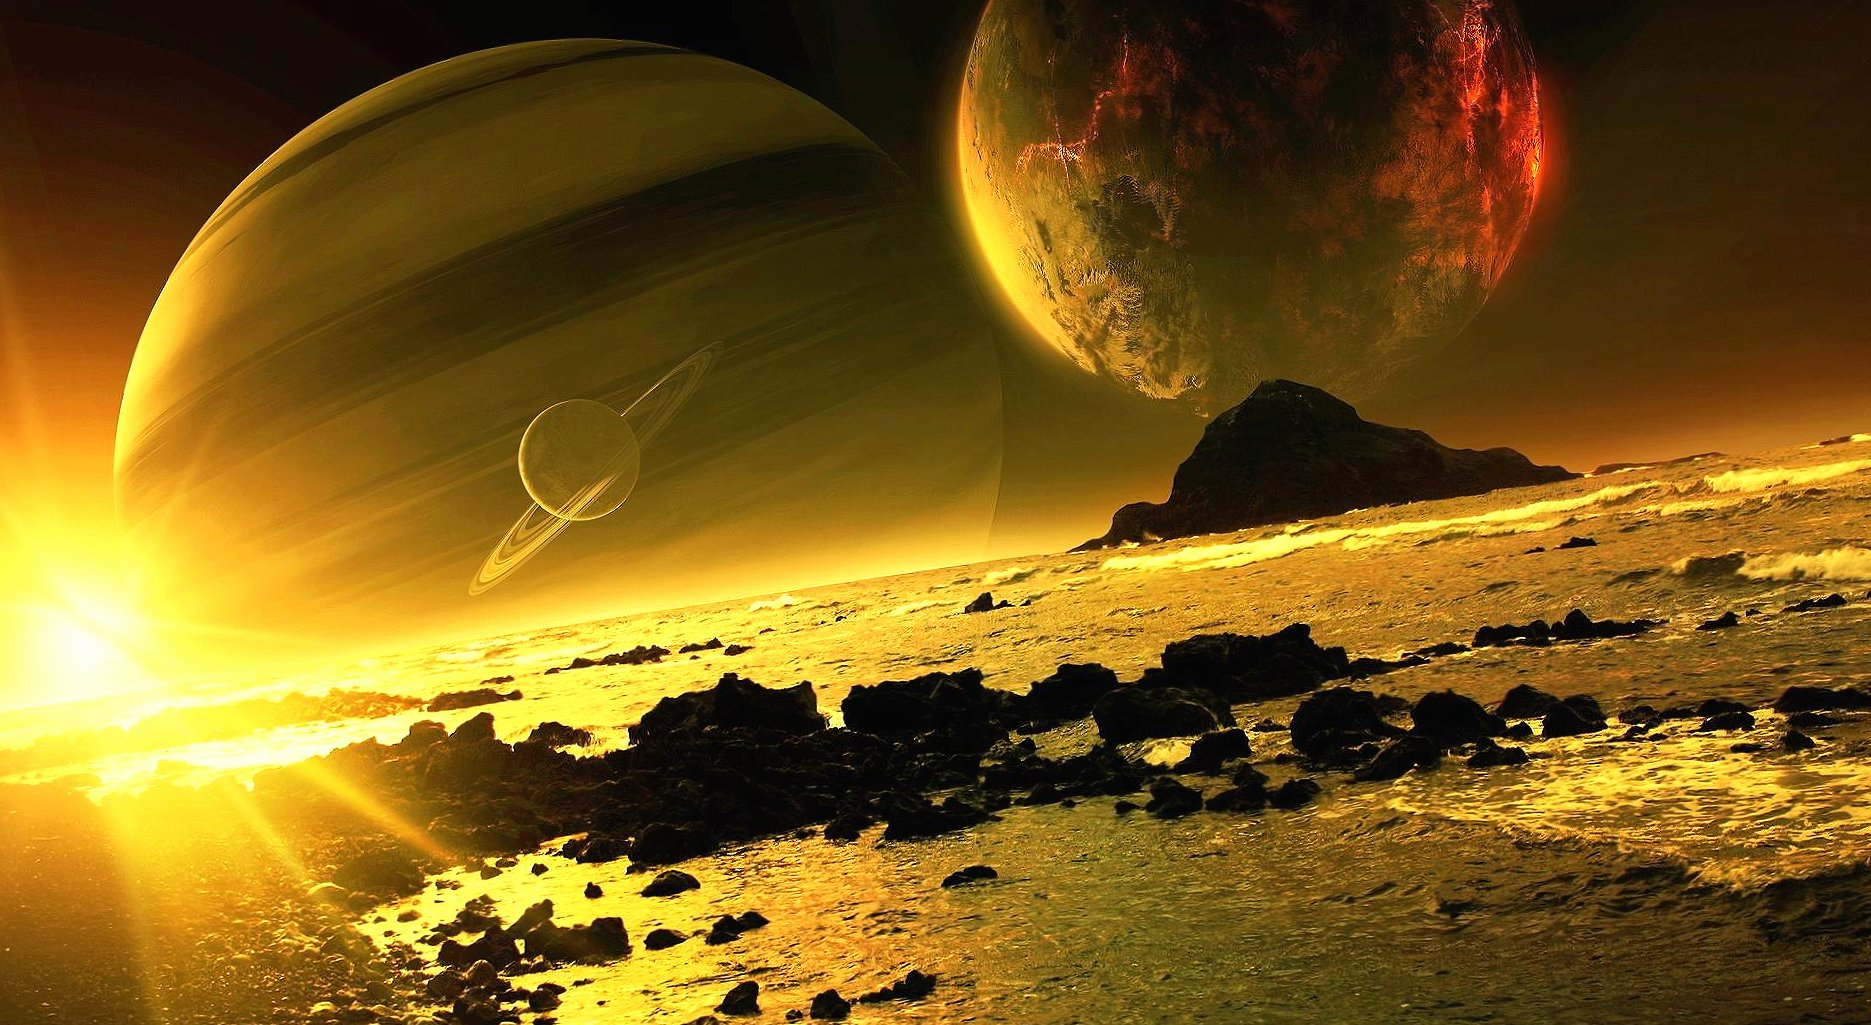 planet scene wallpapers HD quality